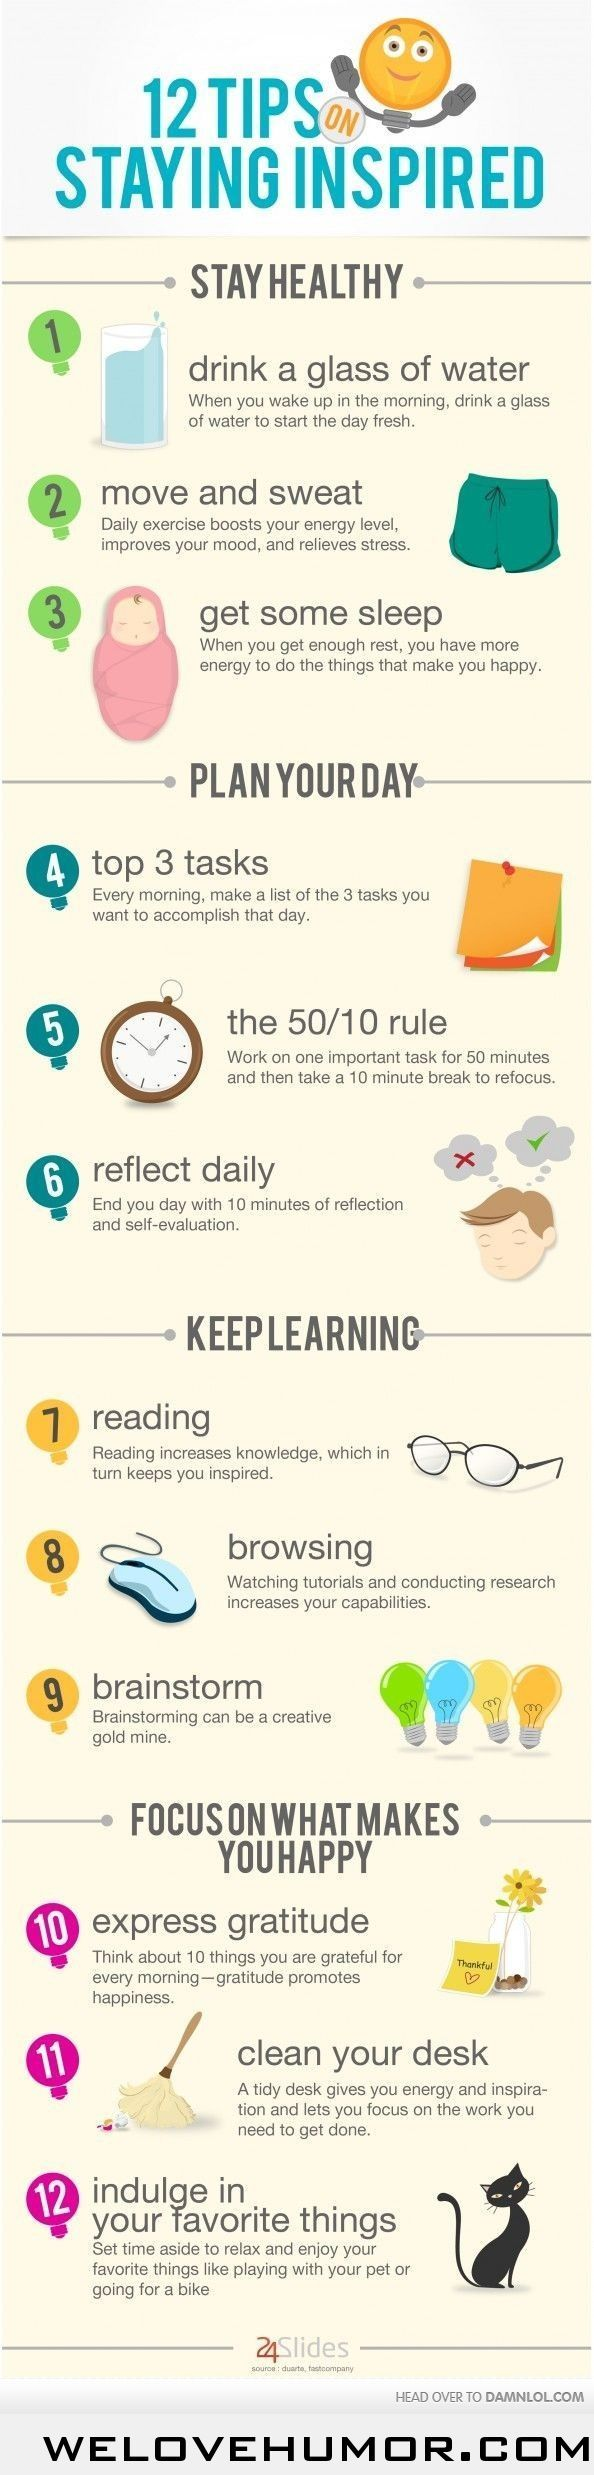 17 Best Images About Motivasi On Pinterest Sleep Deprivation